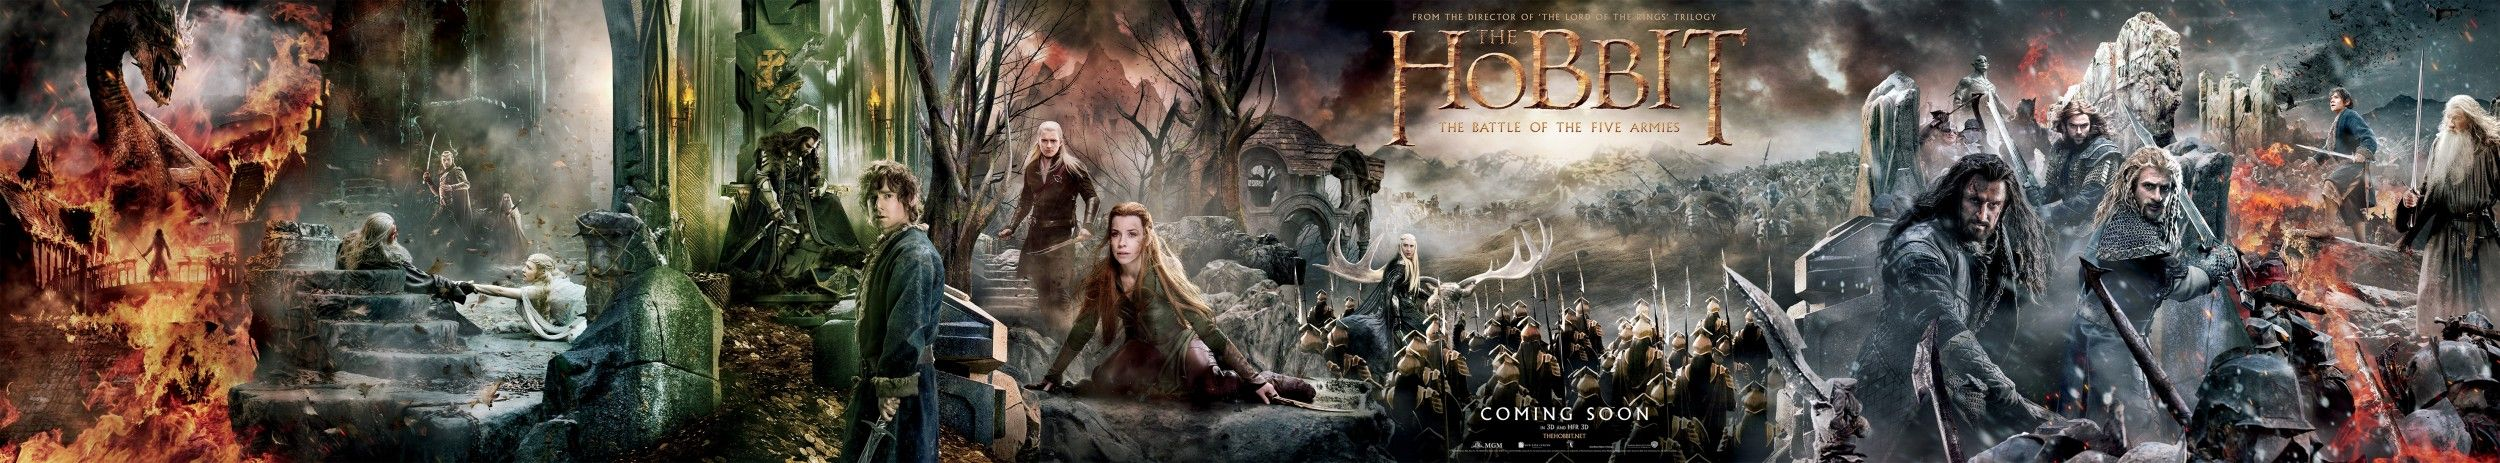 The Hobbit: The Battle of the Five Armies - Full Poster